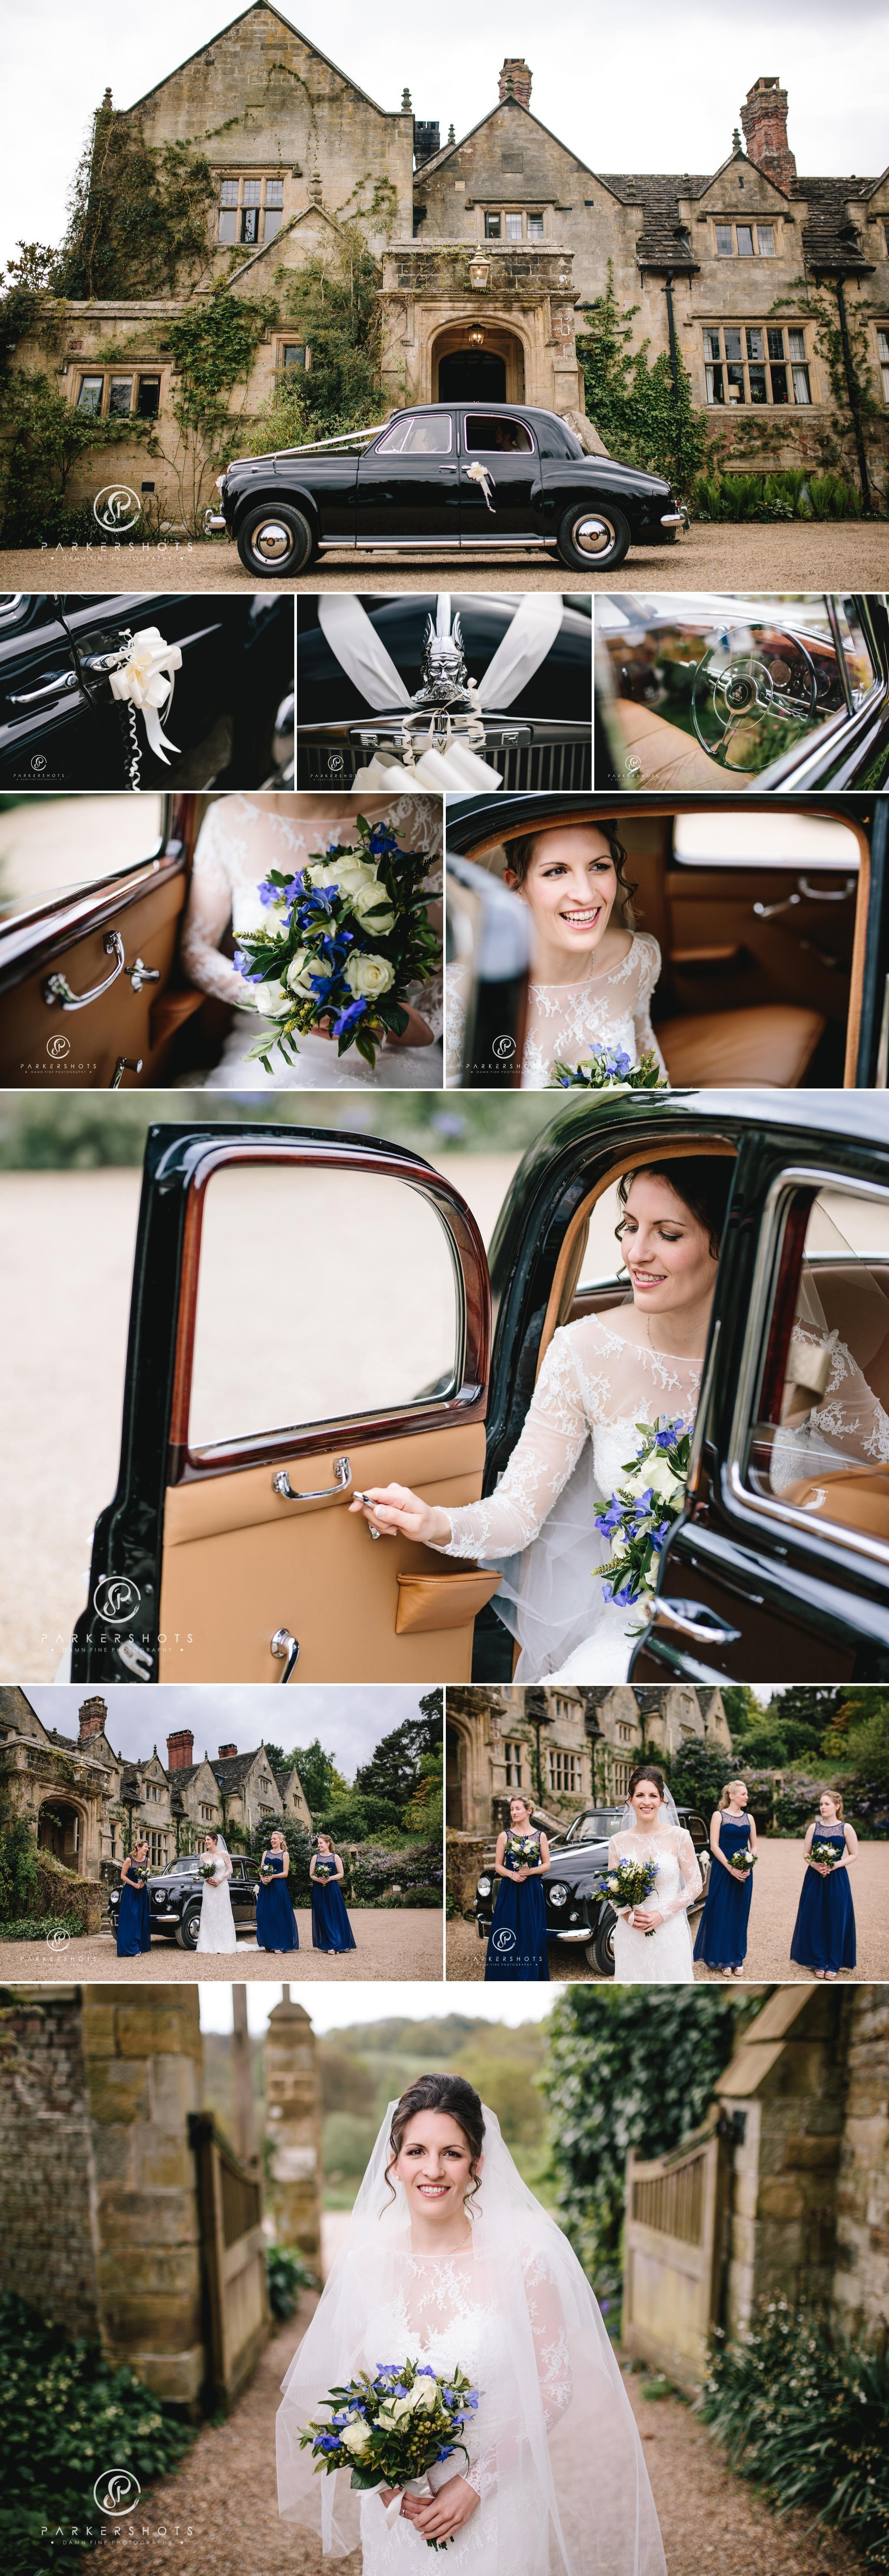 The bride's arrival for wedding at Gravetye Manor